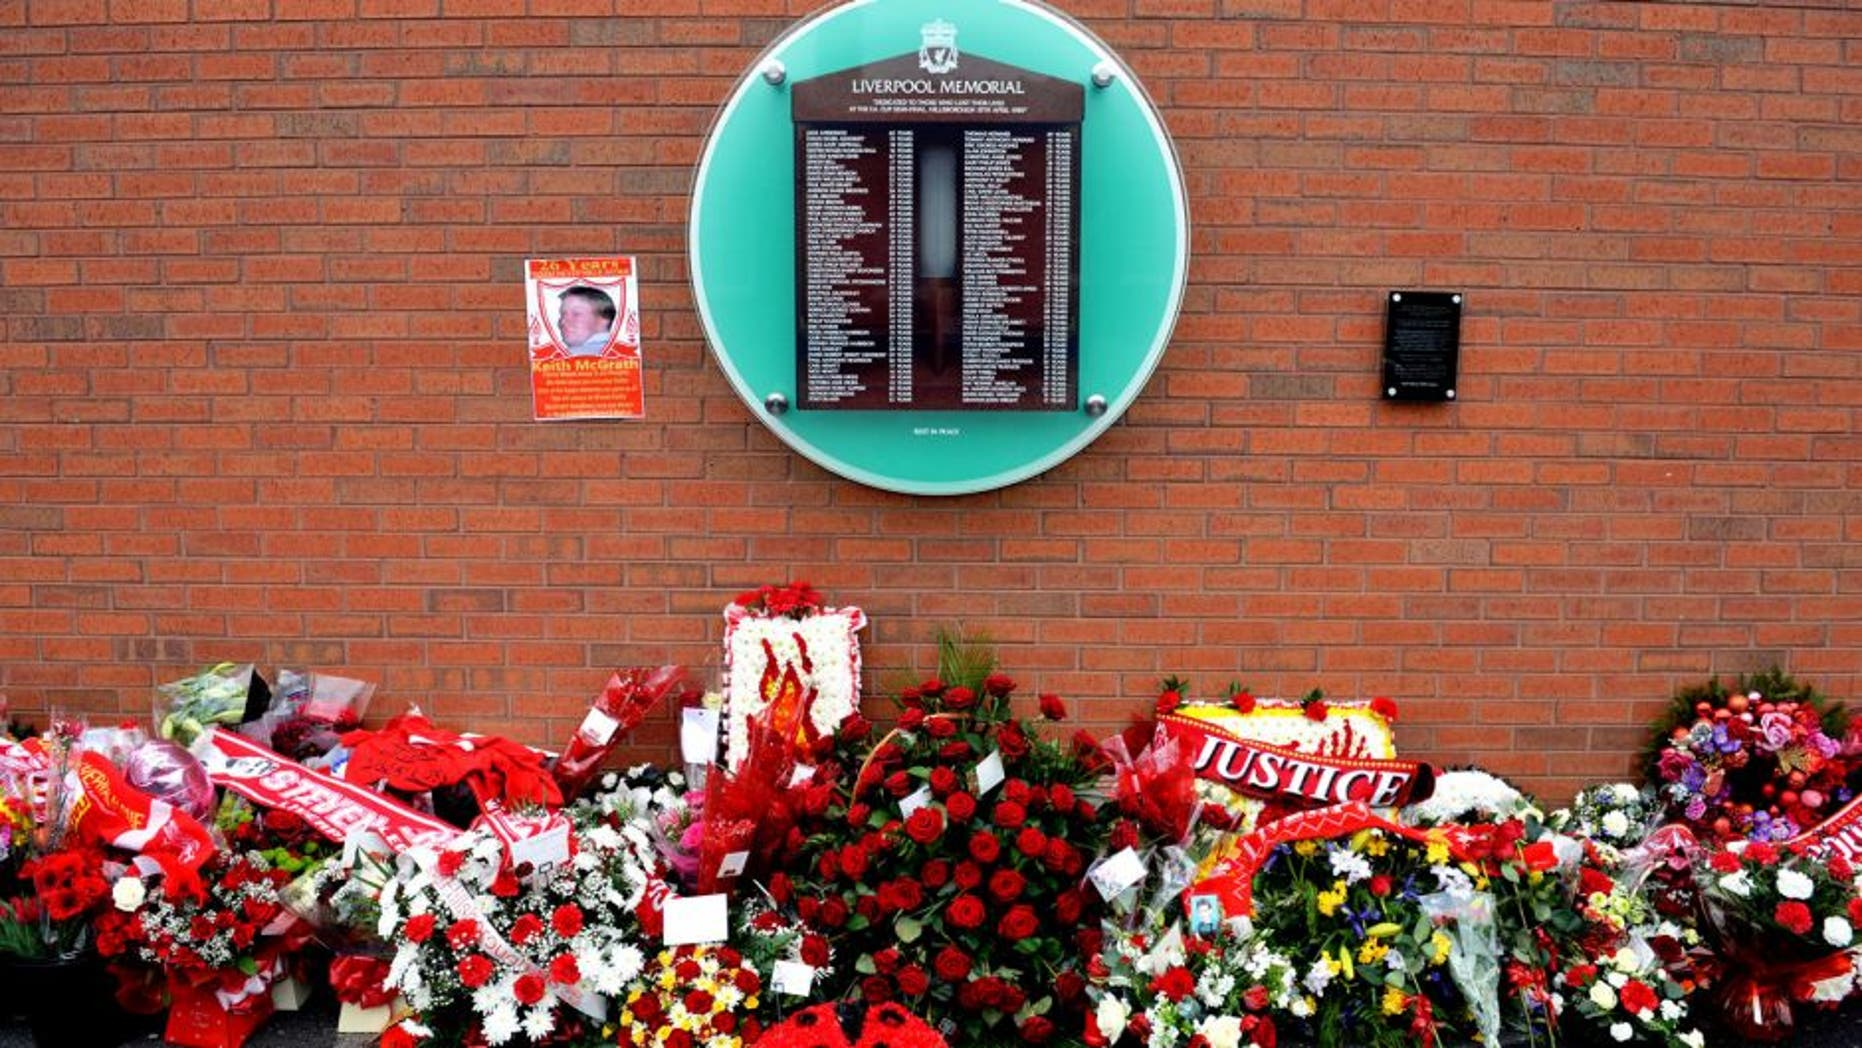 Flowers sit beneath the temporary Hillsborough memorial, ahead of a memorial service at Anfield in Liverpool, north west Engand on April 15, 2015, on the 26th anniversary of the Hillsborough Disaster, where 96 Liverpool supporters died at the 1989 FA Cup semi final between Liverpool and Nottingham Forest at Hillsborough football ground in Sheffield. AFP PHOTO / PAUL ELLIS (Photo credit should read PAUL ELLIS/AFP/Getty Images)